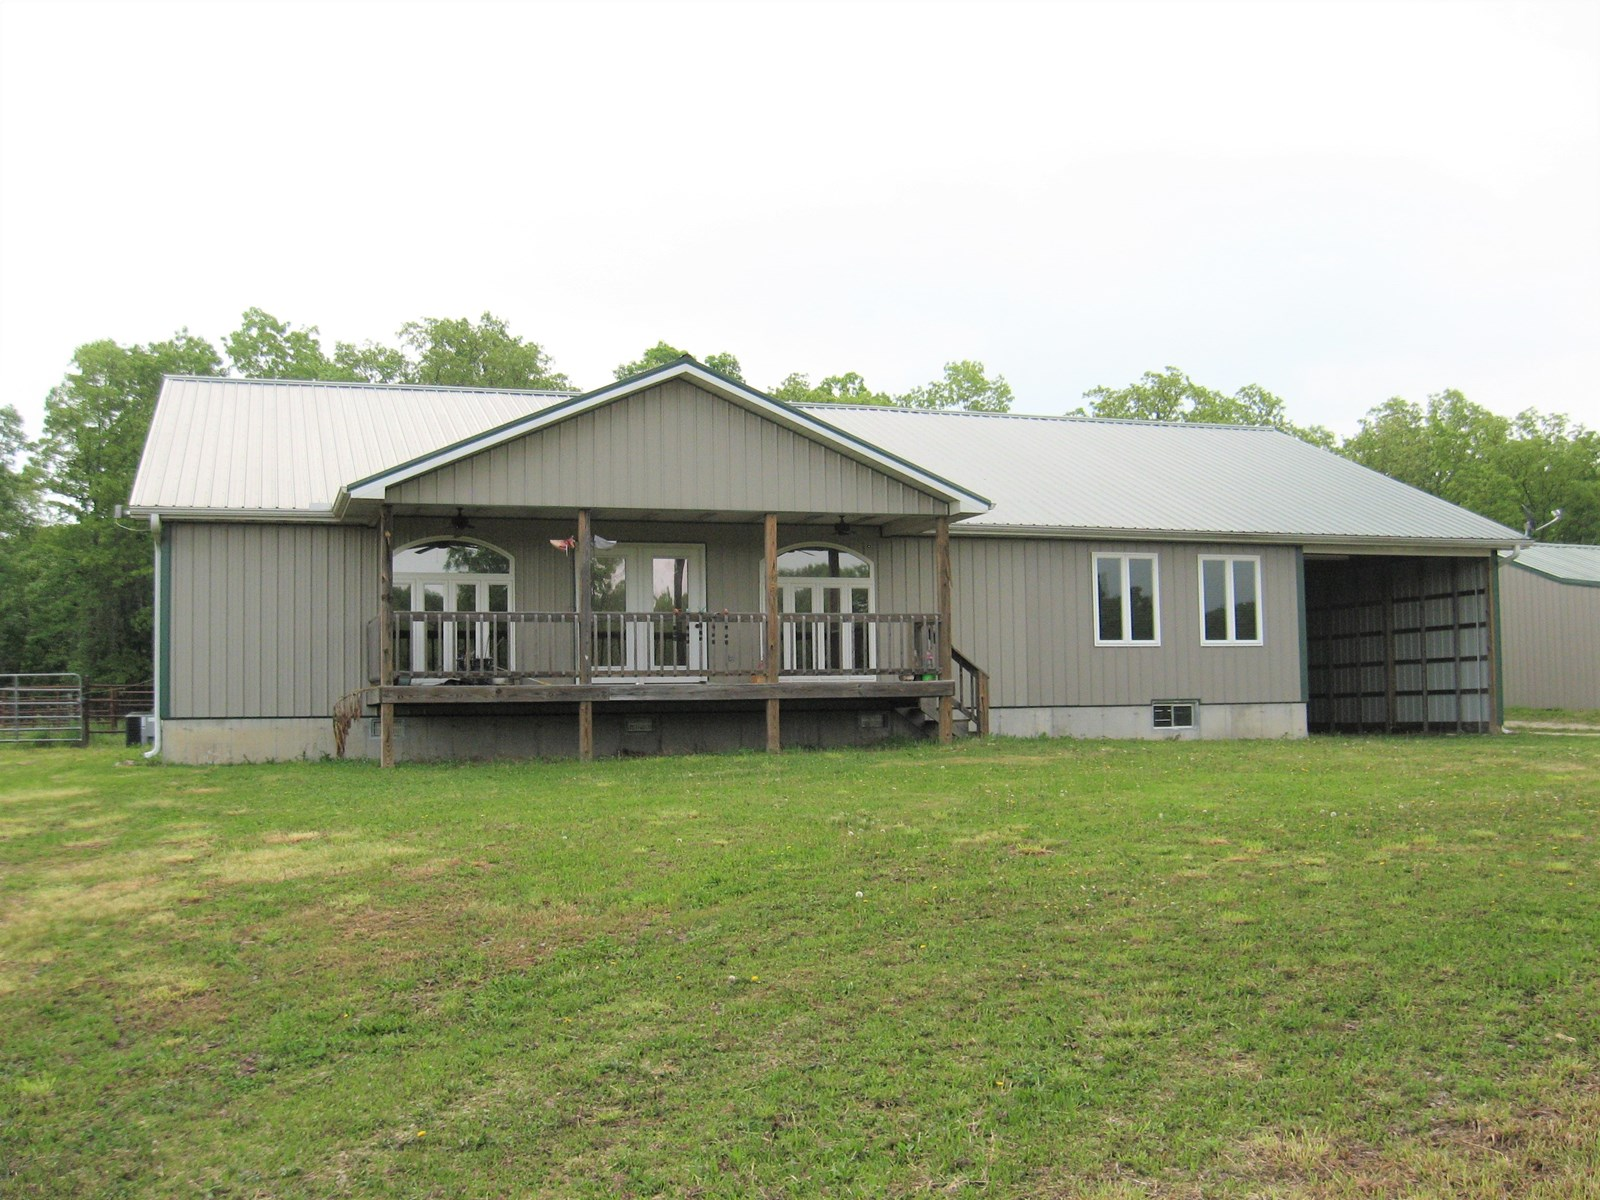 FOR SALE HORSE PROPERTY FOR SALE DENT COUNTY SALEM MO